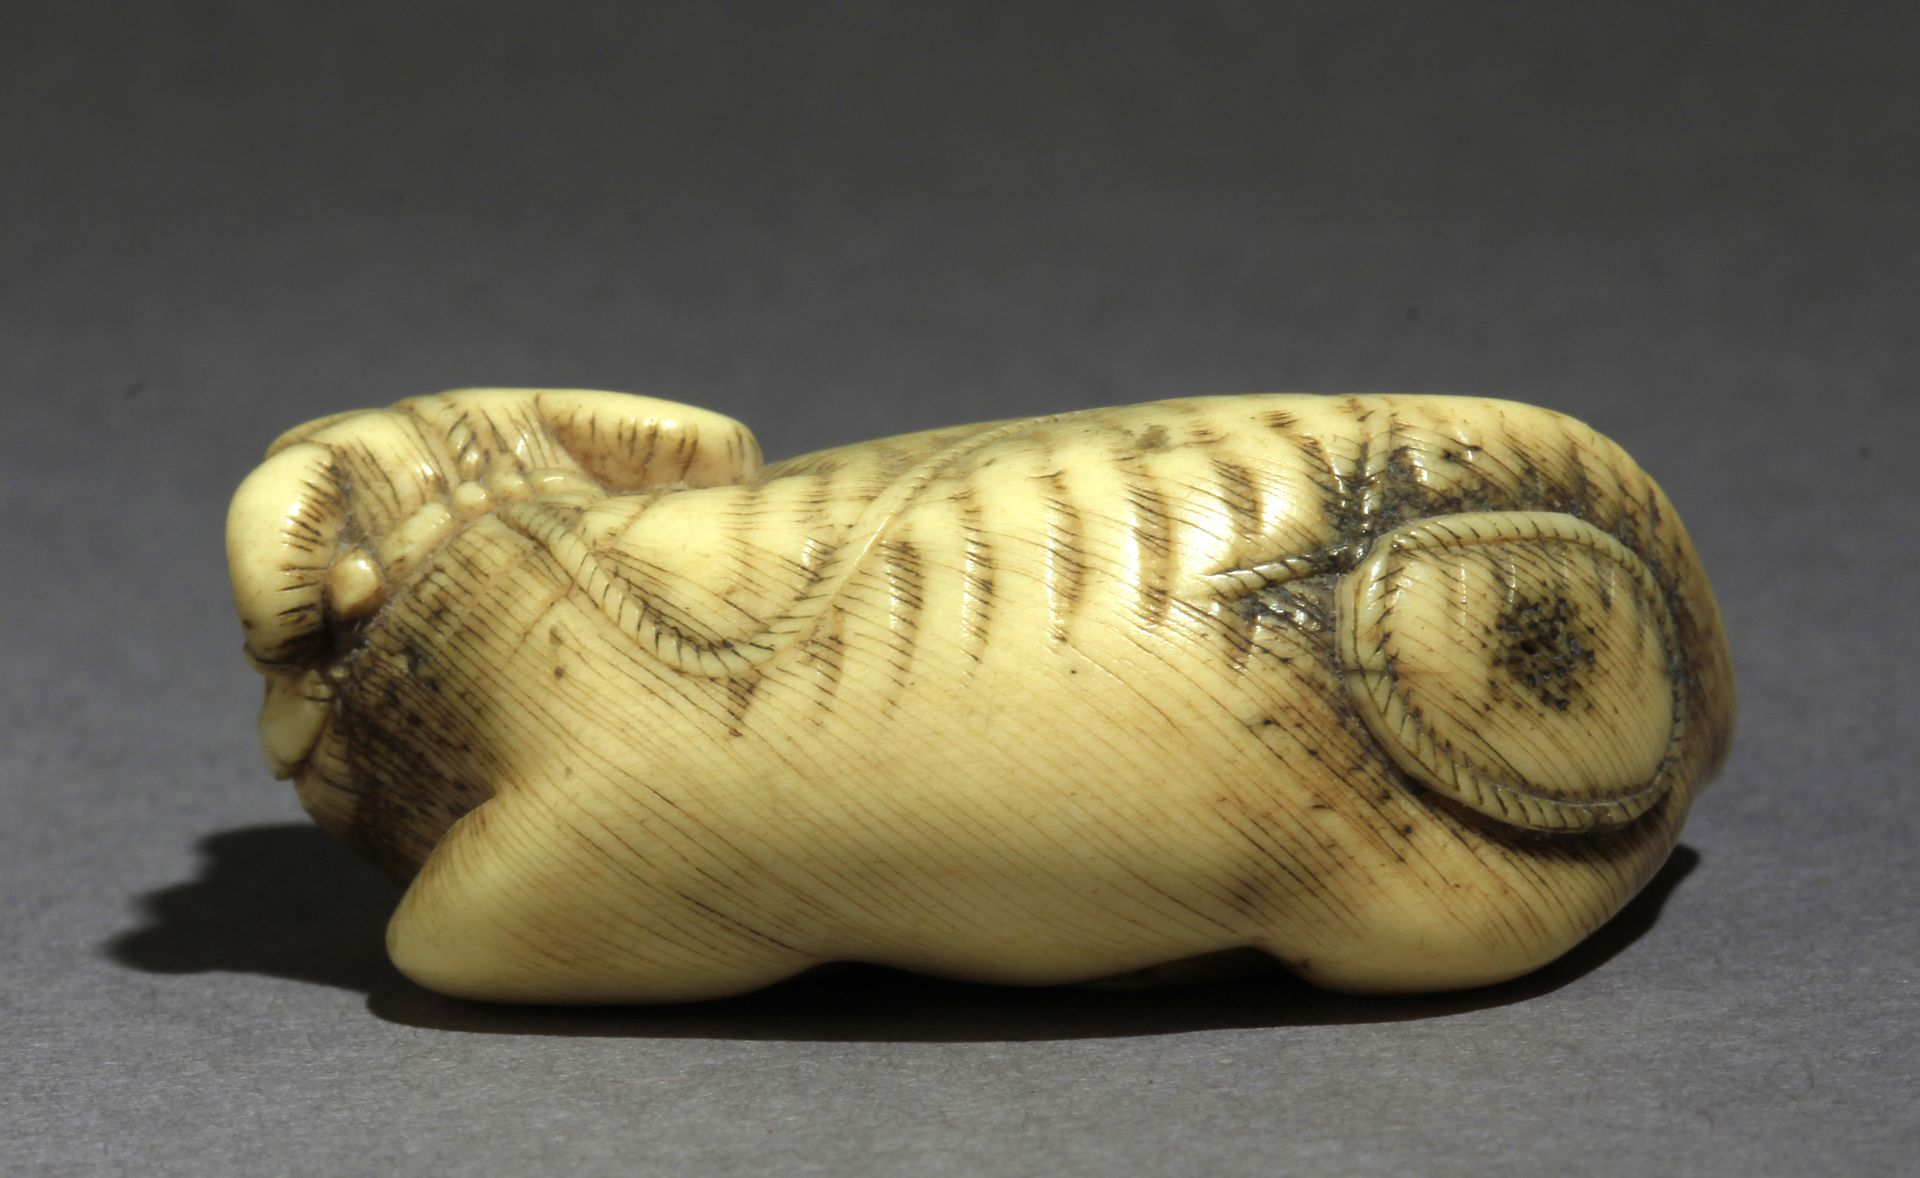 An early 19th century Japanese netsuke from Edo period - Image 4 of 7